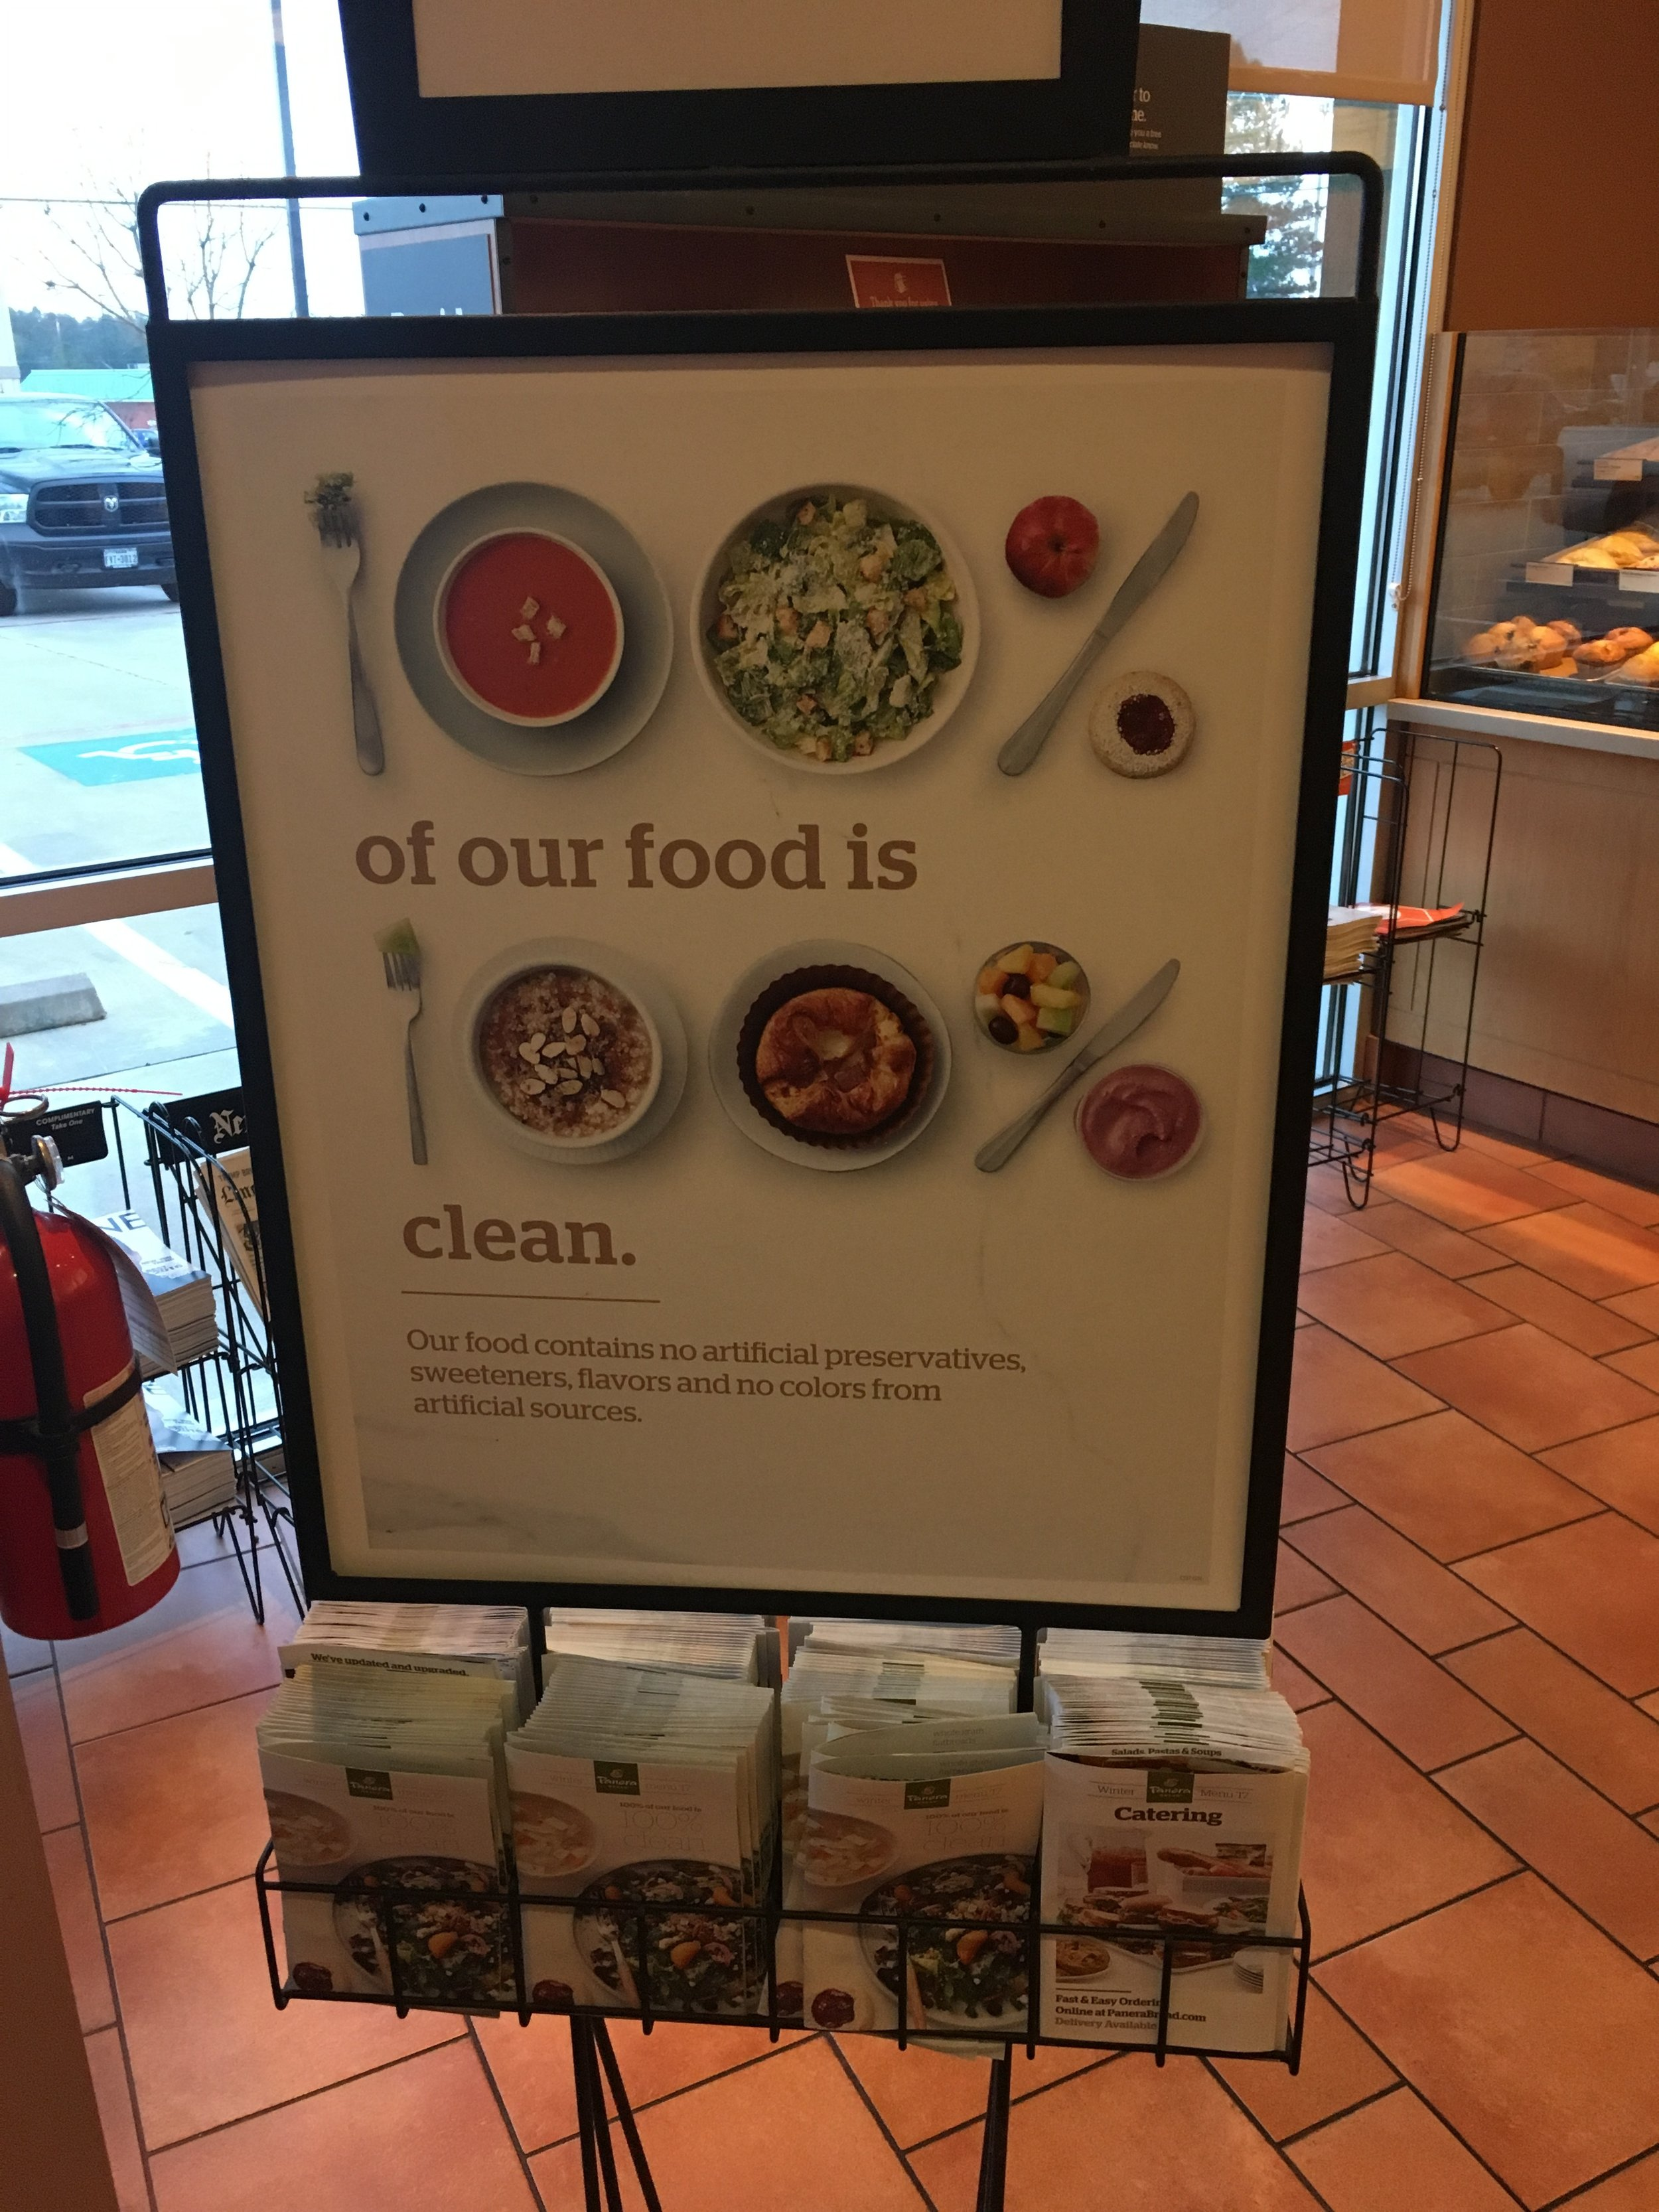 Panera's new clean campaign, snapped at my local store